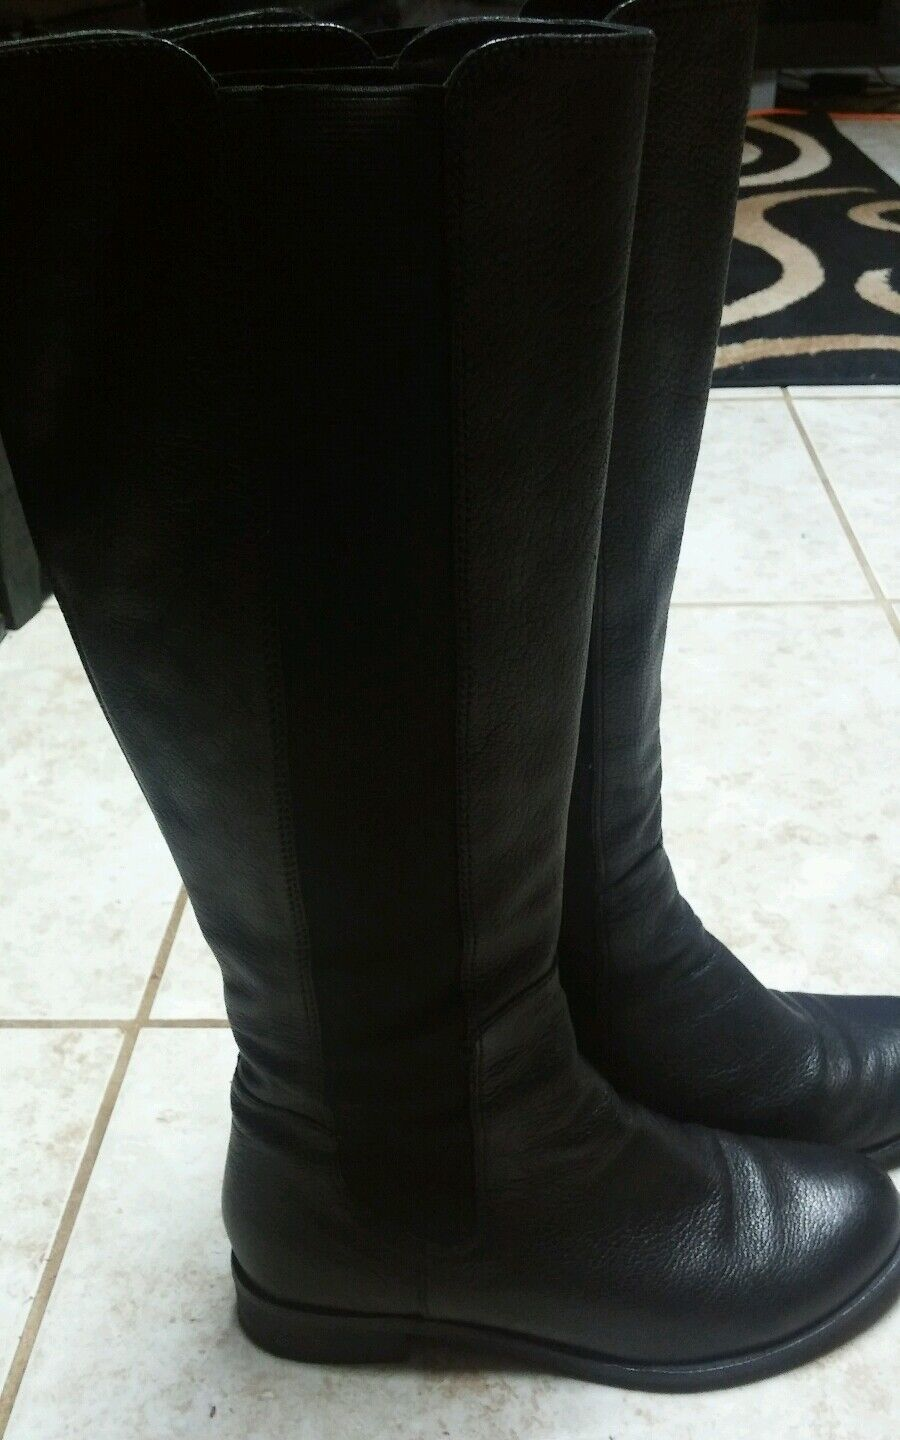 COLE HAAN Nike Air  Black the Knee high  Black  Leather Boots size 7.5 B 5cdf0f